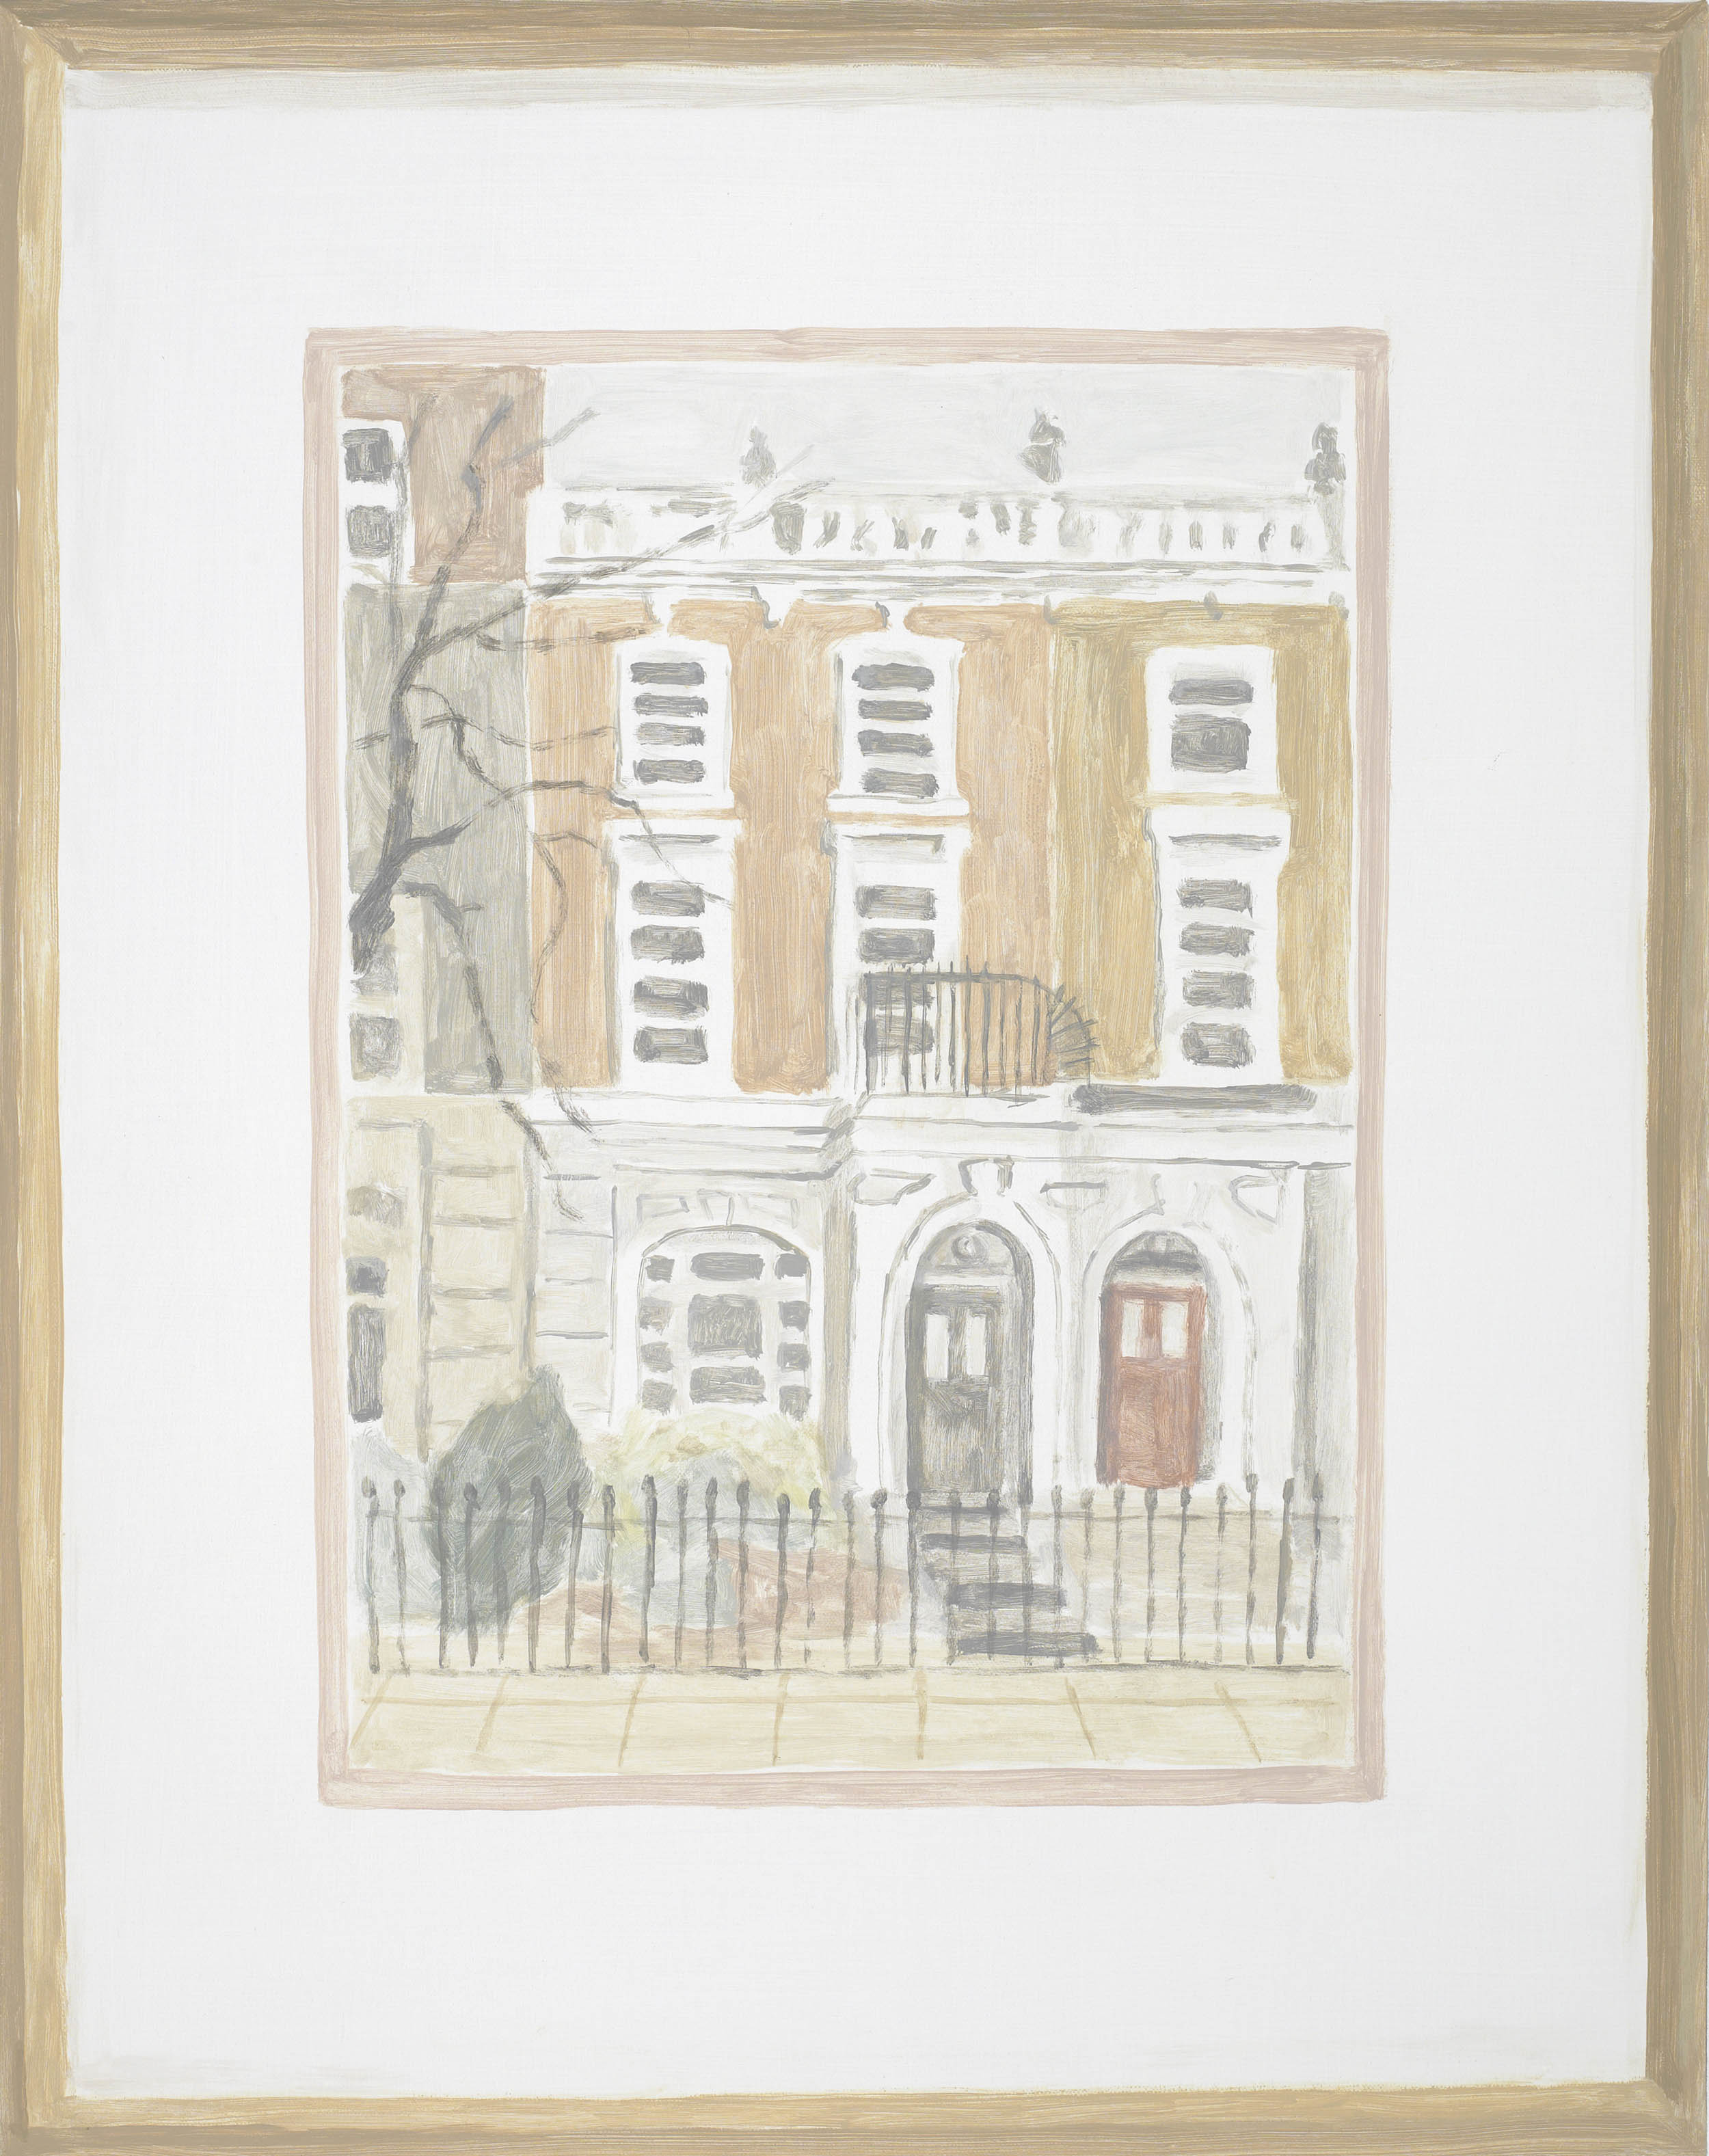 Framed Drawing: 10 Harley Gardens, acrylic on canvas, 24 x 19 inches, 2013.